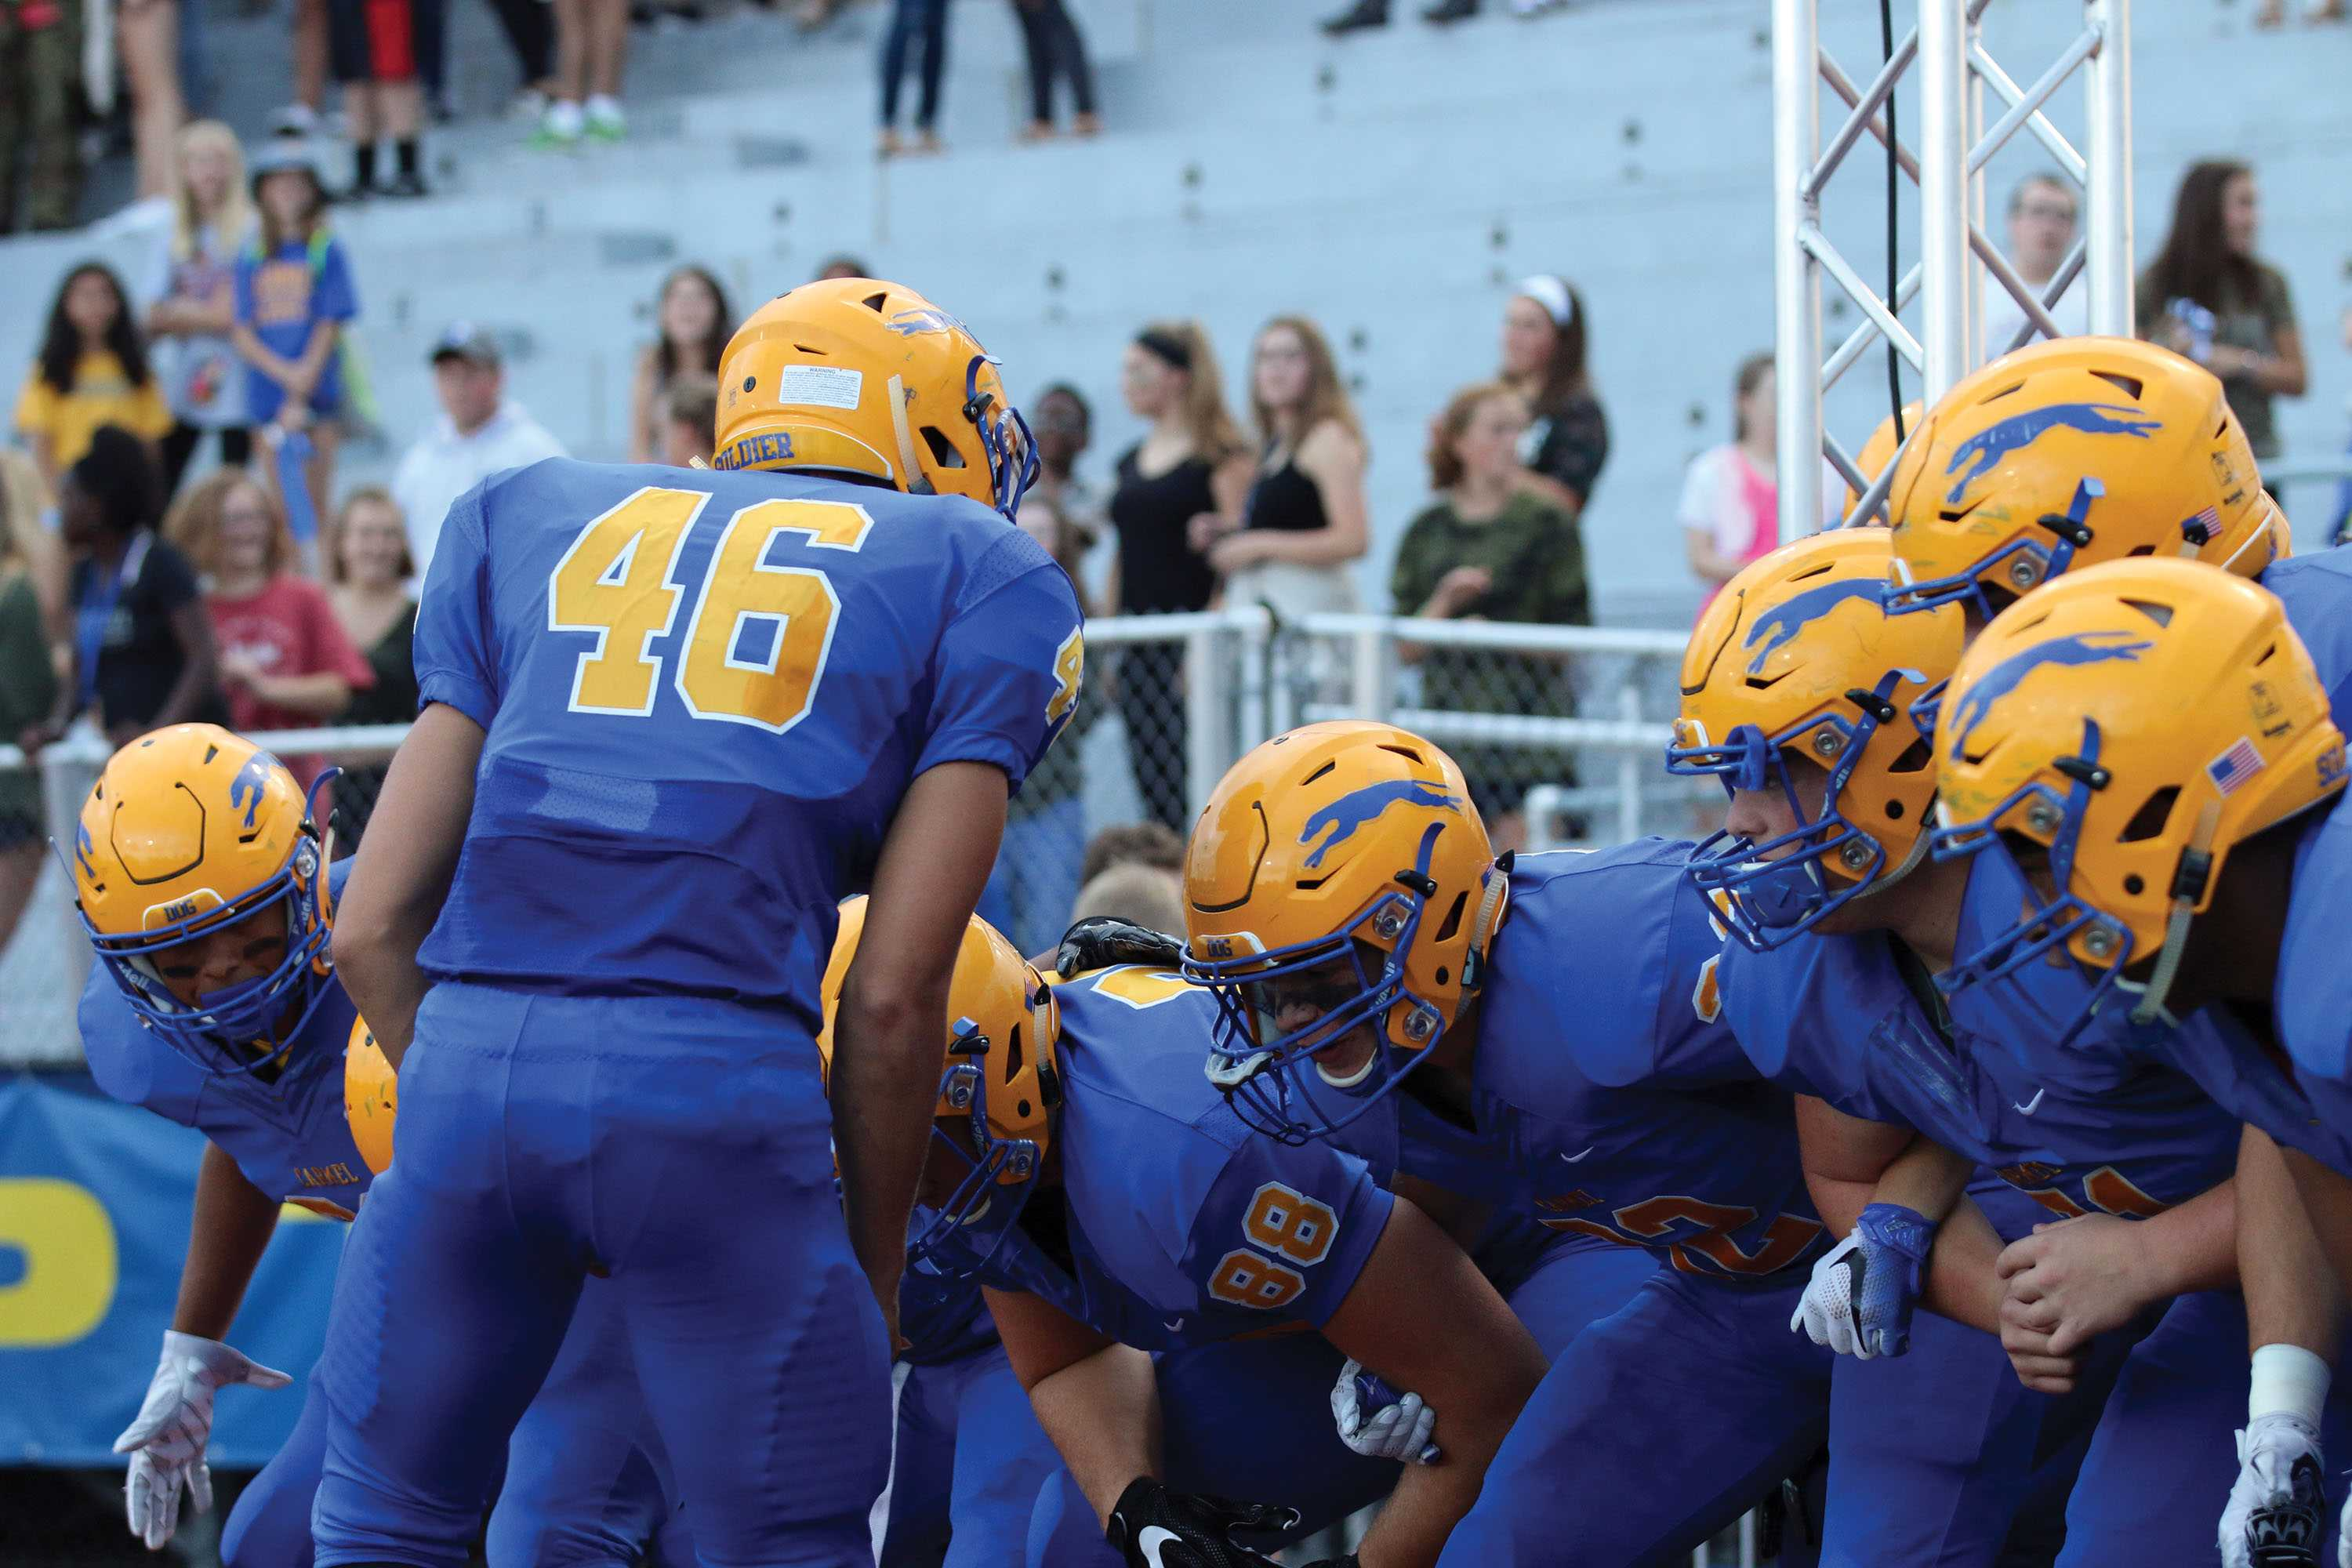 """PREGAME PREP: The CHS football team huddles before a game in the tunnel and prepares by getting motivated. Before every home game the team walks out of the locker room, stands in a huddle then stampedes on to the field as cheerleaders run with flags that spell out """"Carmel."""" This is one of the many traditions the CHS football team has. Others include a team dinner the day before games and also cheering the CHS fight song after finishing the game."""